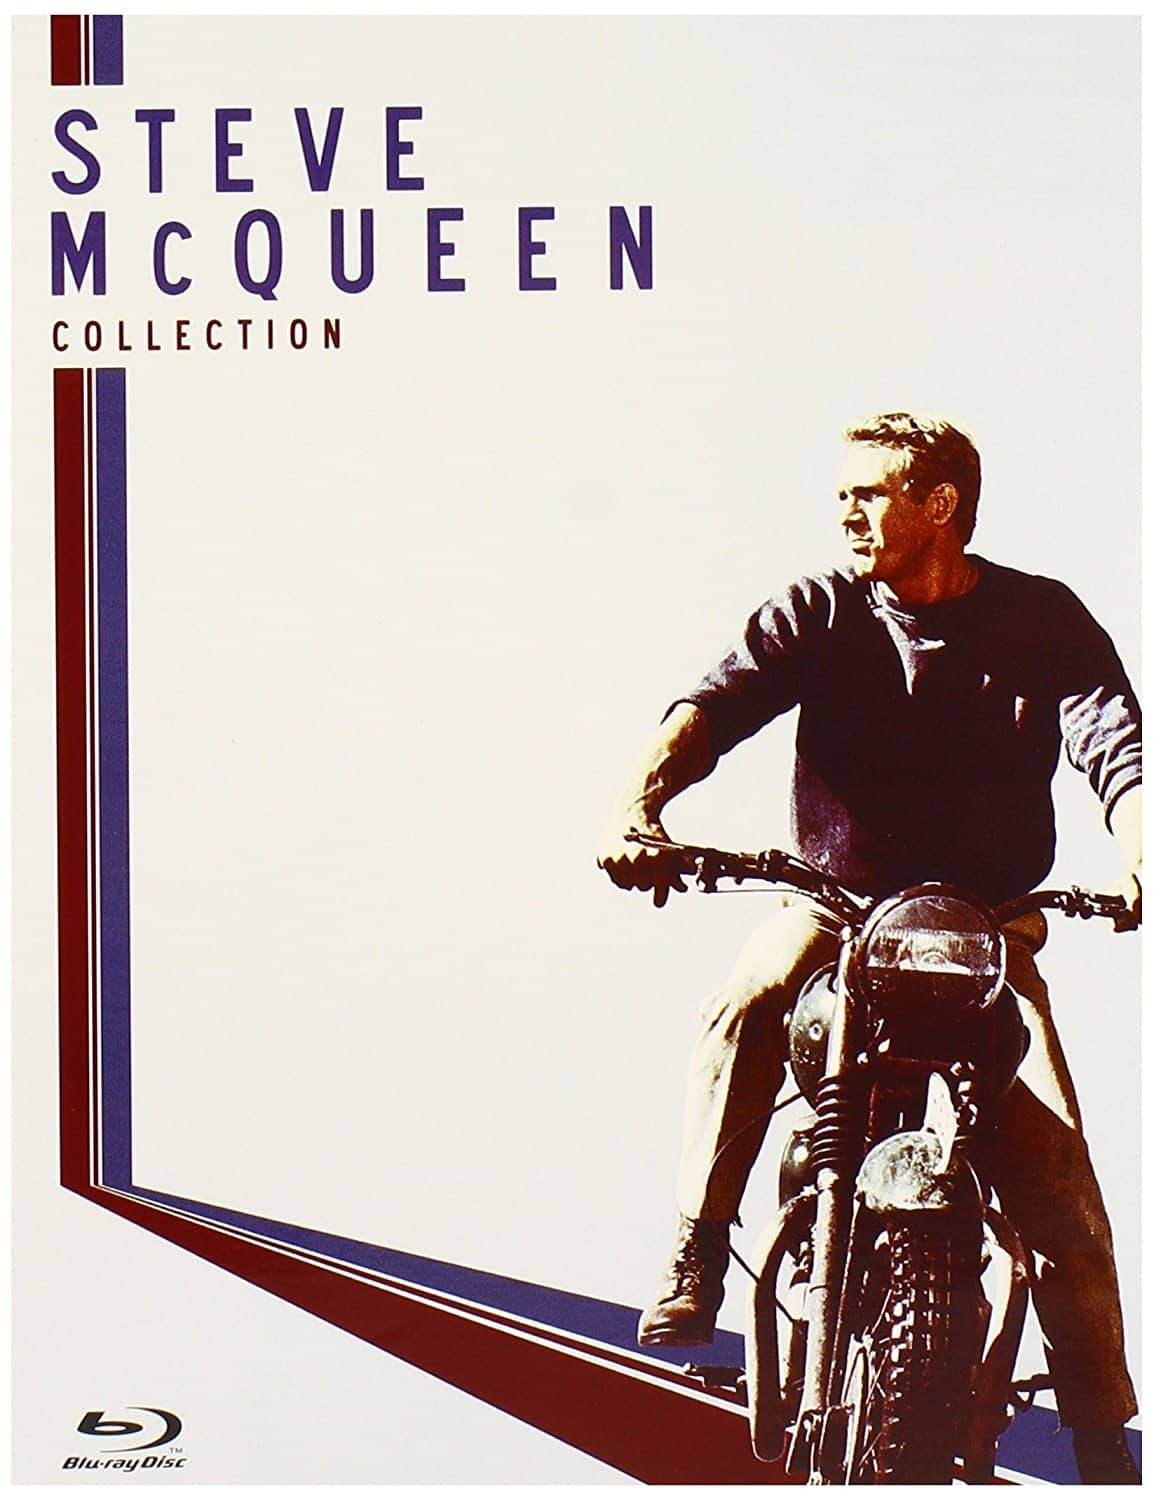 The Steve McQueen Collection (The Great Escape / The Magnificent Seven / The Thomas Crown Affair / The Sand Pebbles) [Blu-ray] $14.96 FS for Prime Members